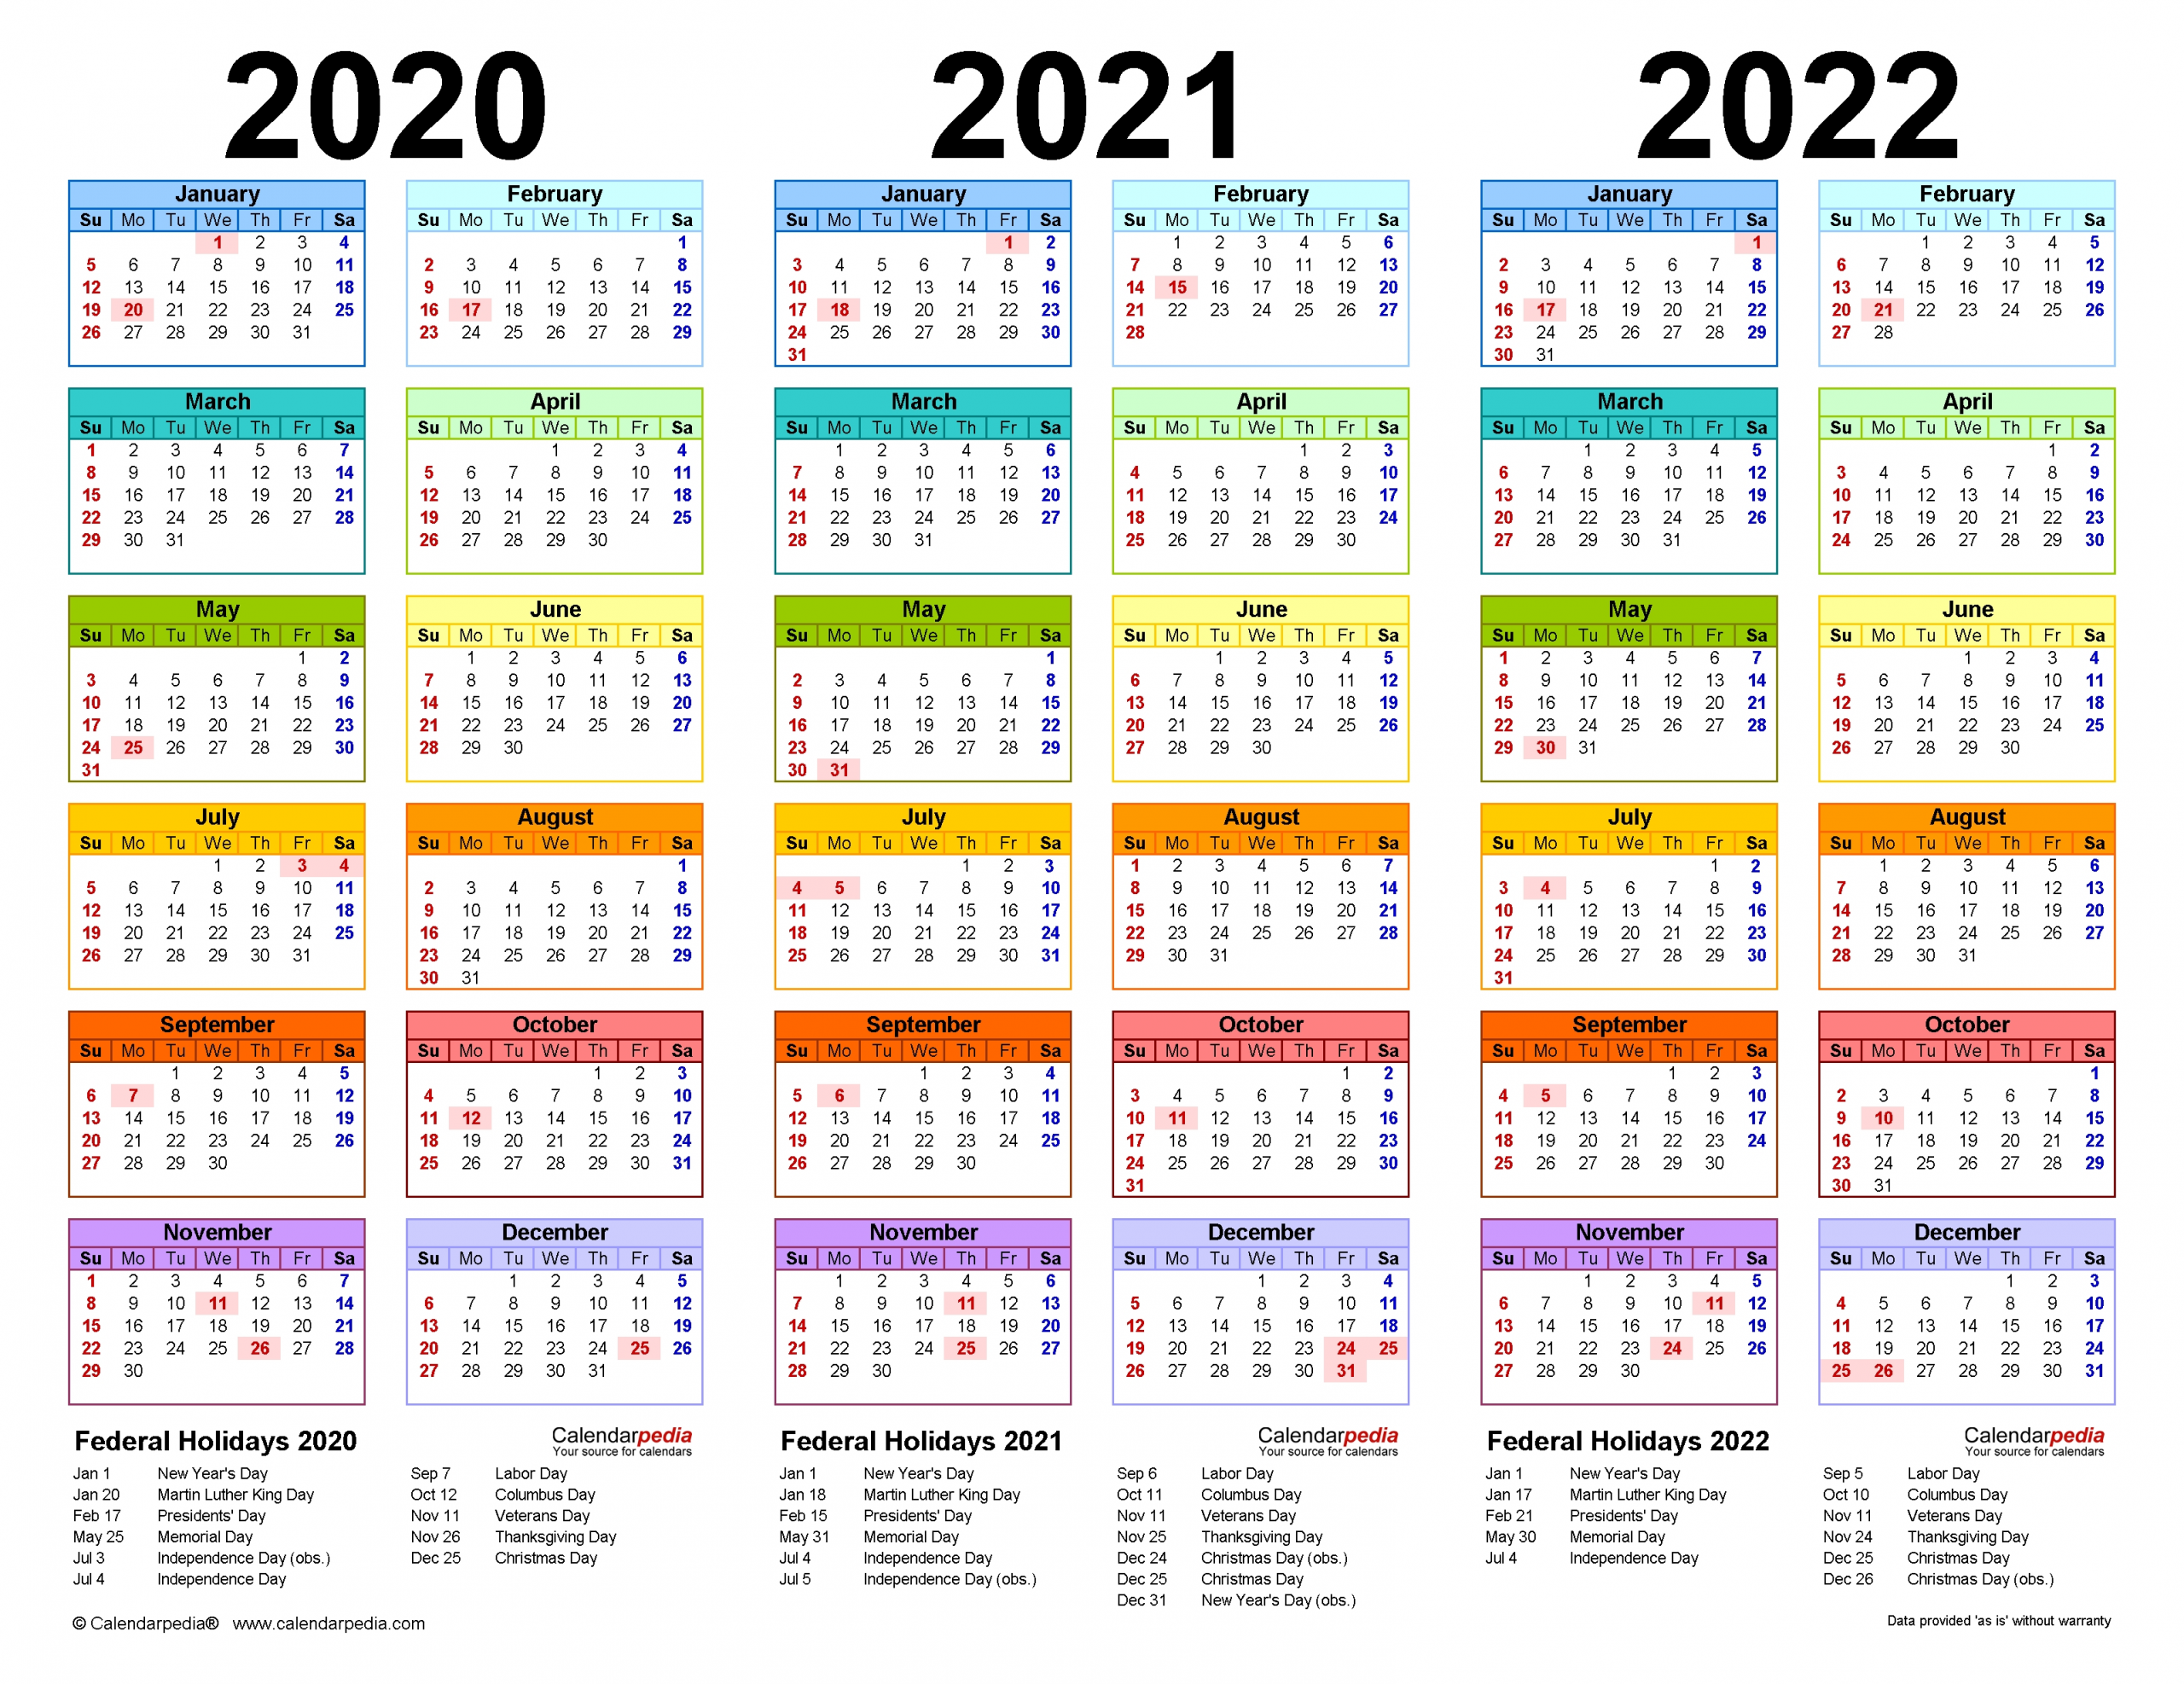 Take Calendars For The Years 2021 2021 & 2022